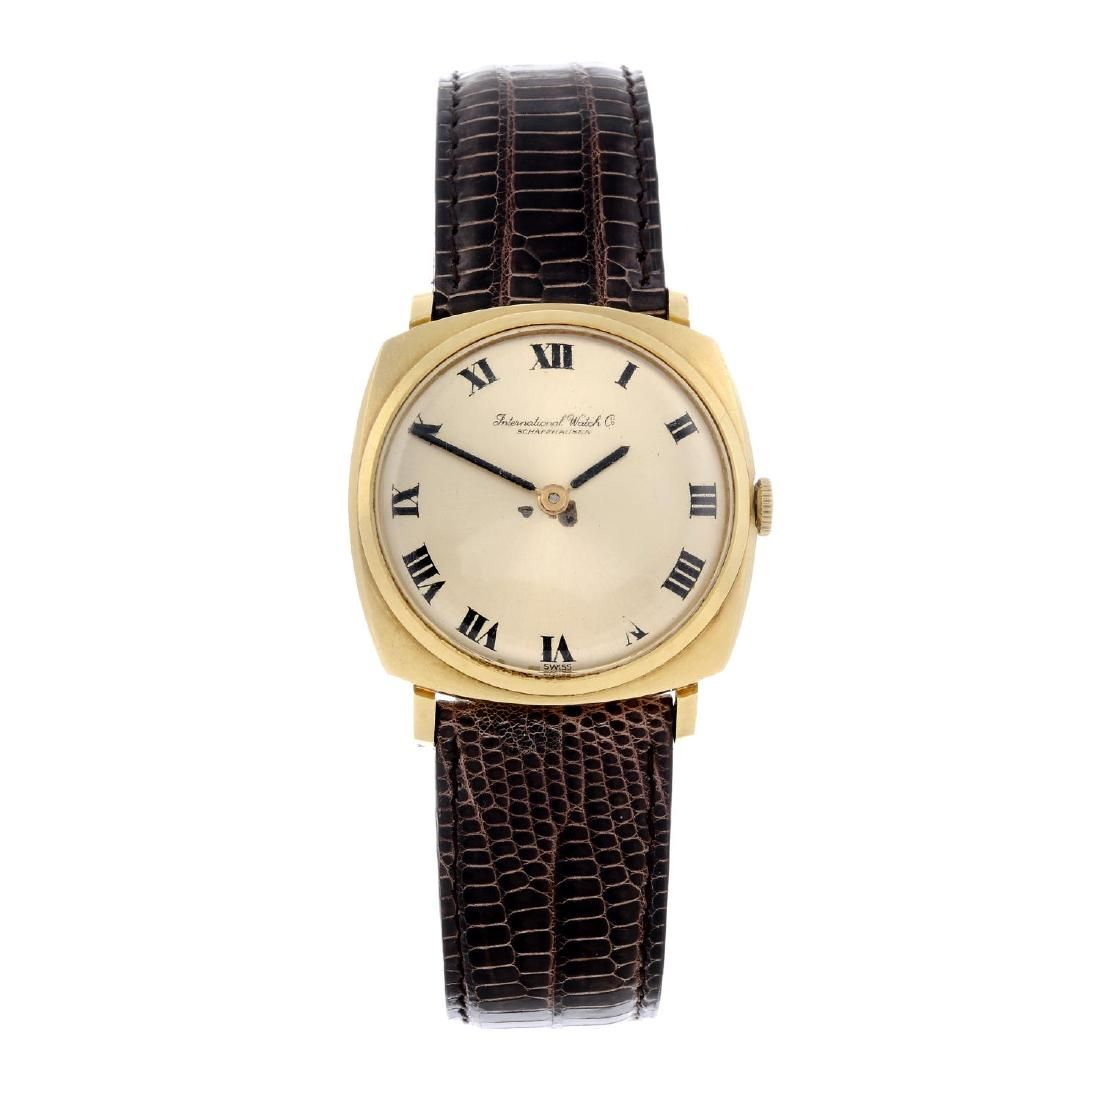 IWC - a gentleman's wrist watch. Yellow metal case,